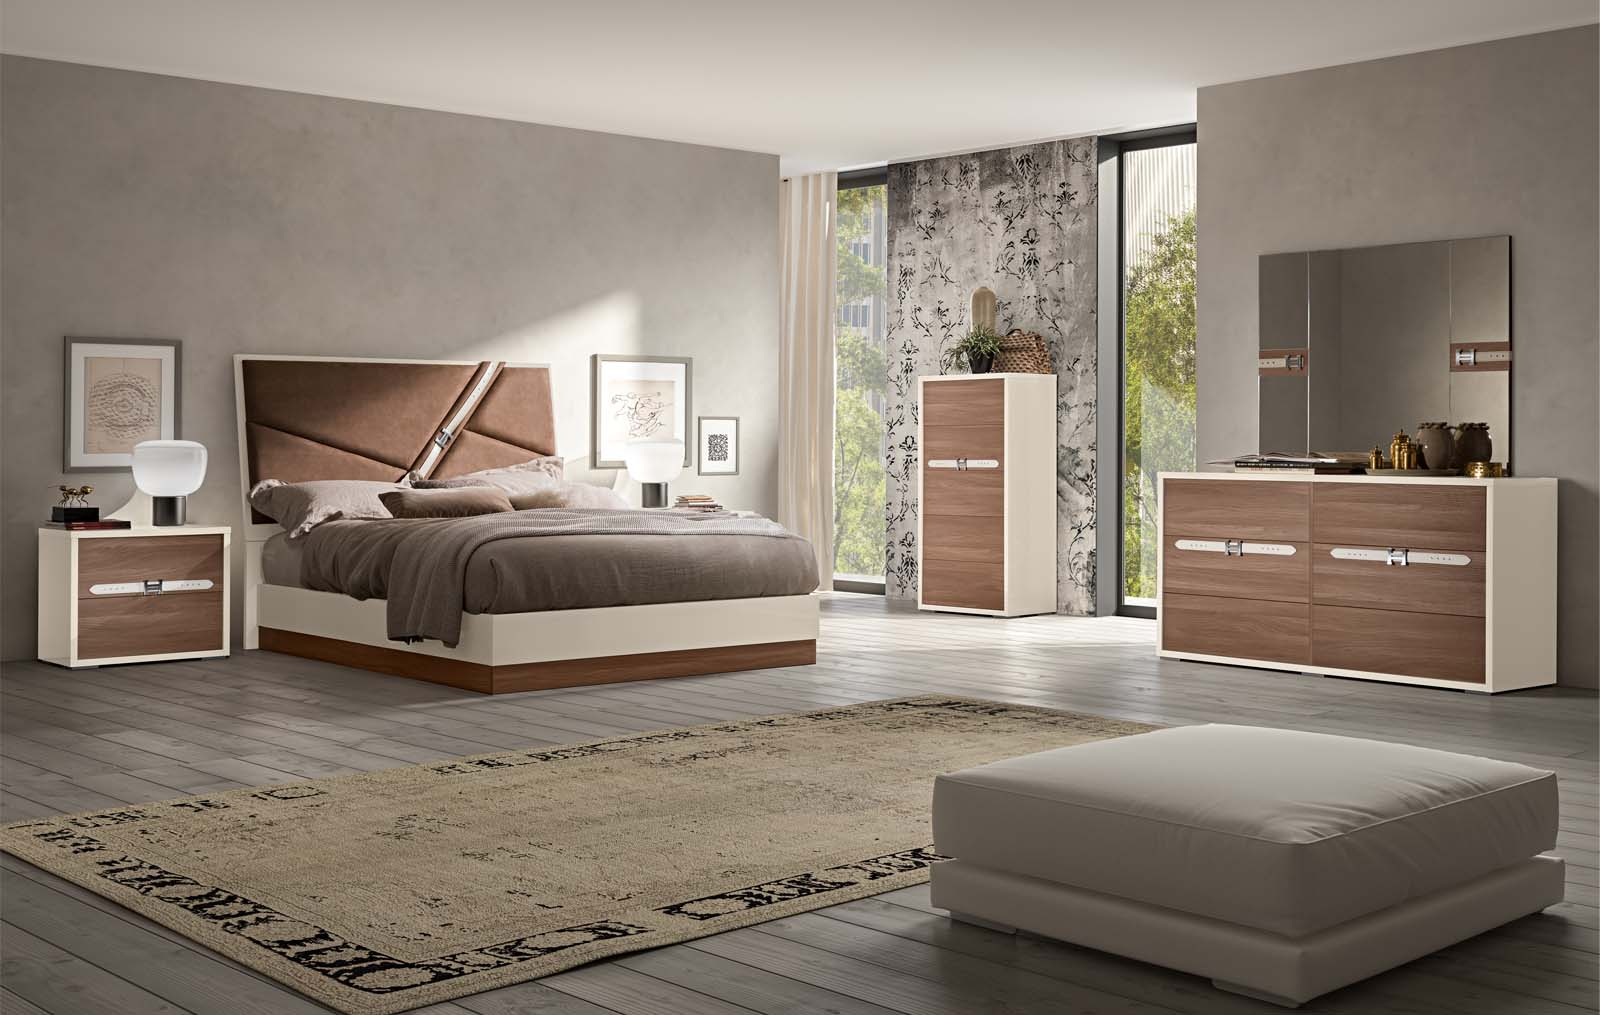 Made In Italy Wood Designer Bedroom Furniture Sets With Optional Storage System with regard to 15 Smart Designs of How to Upgrade Modern Bedroom Storage